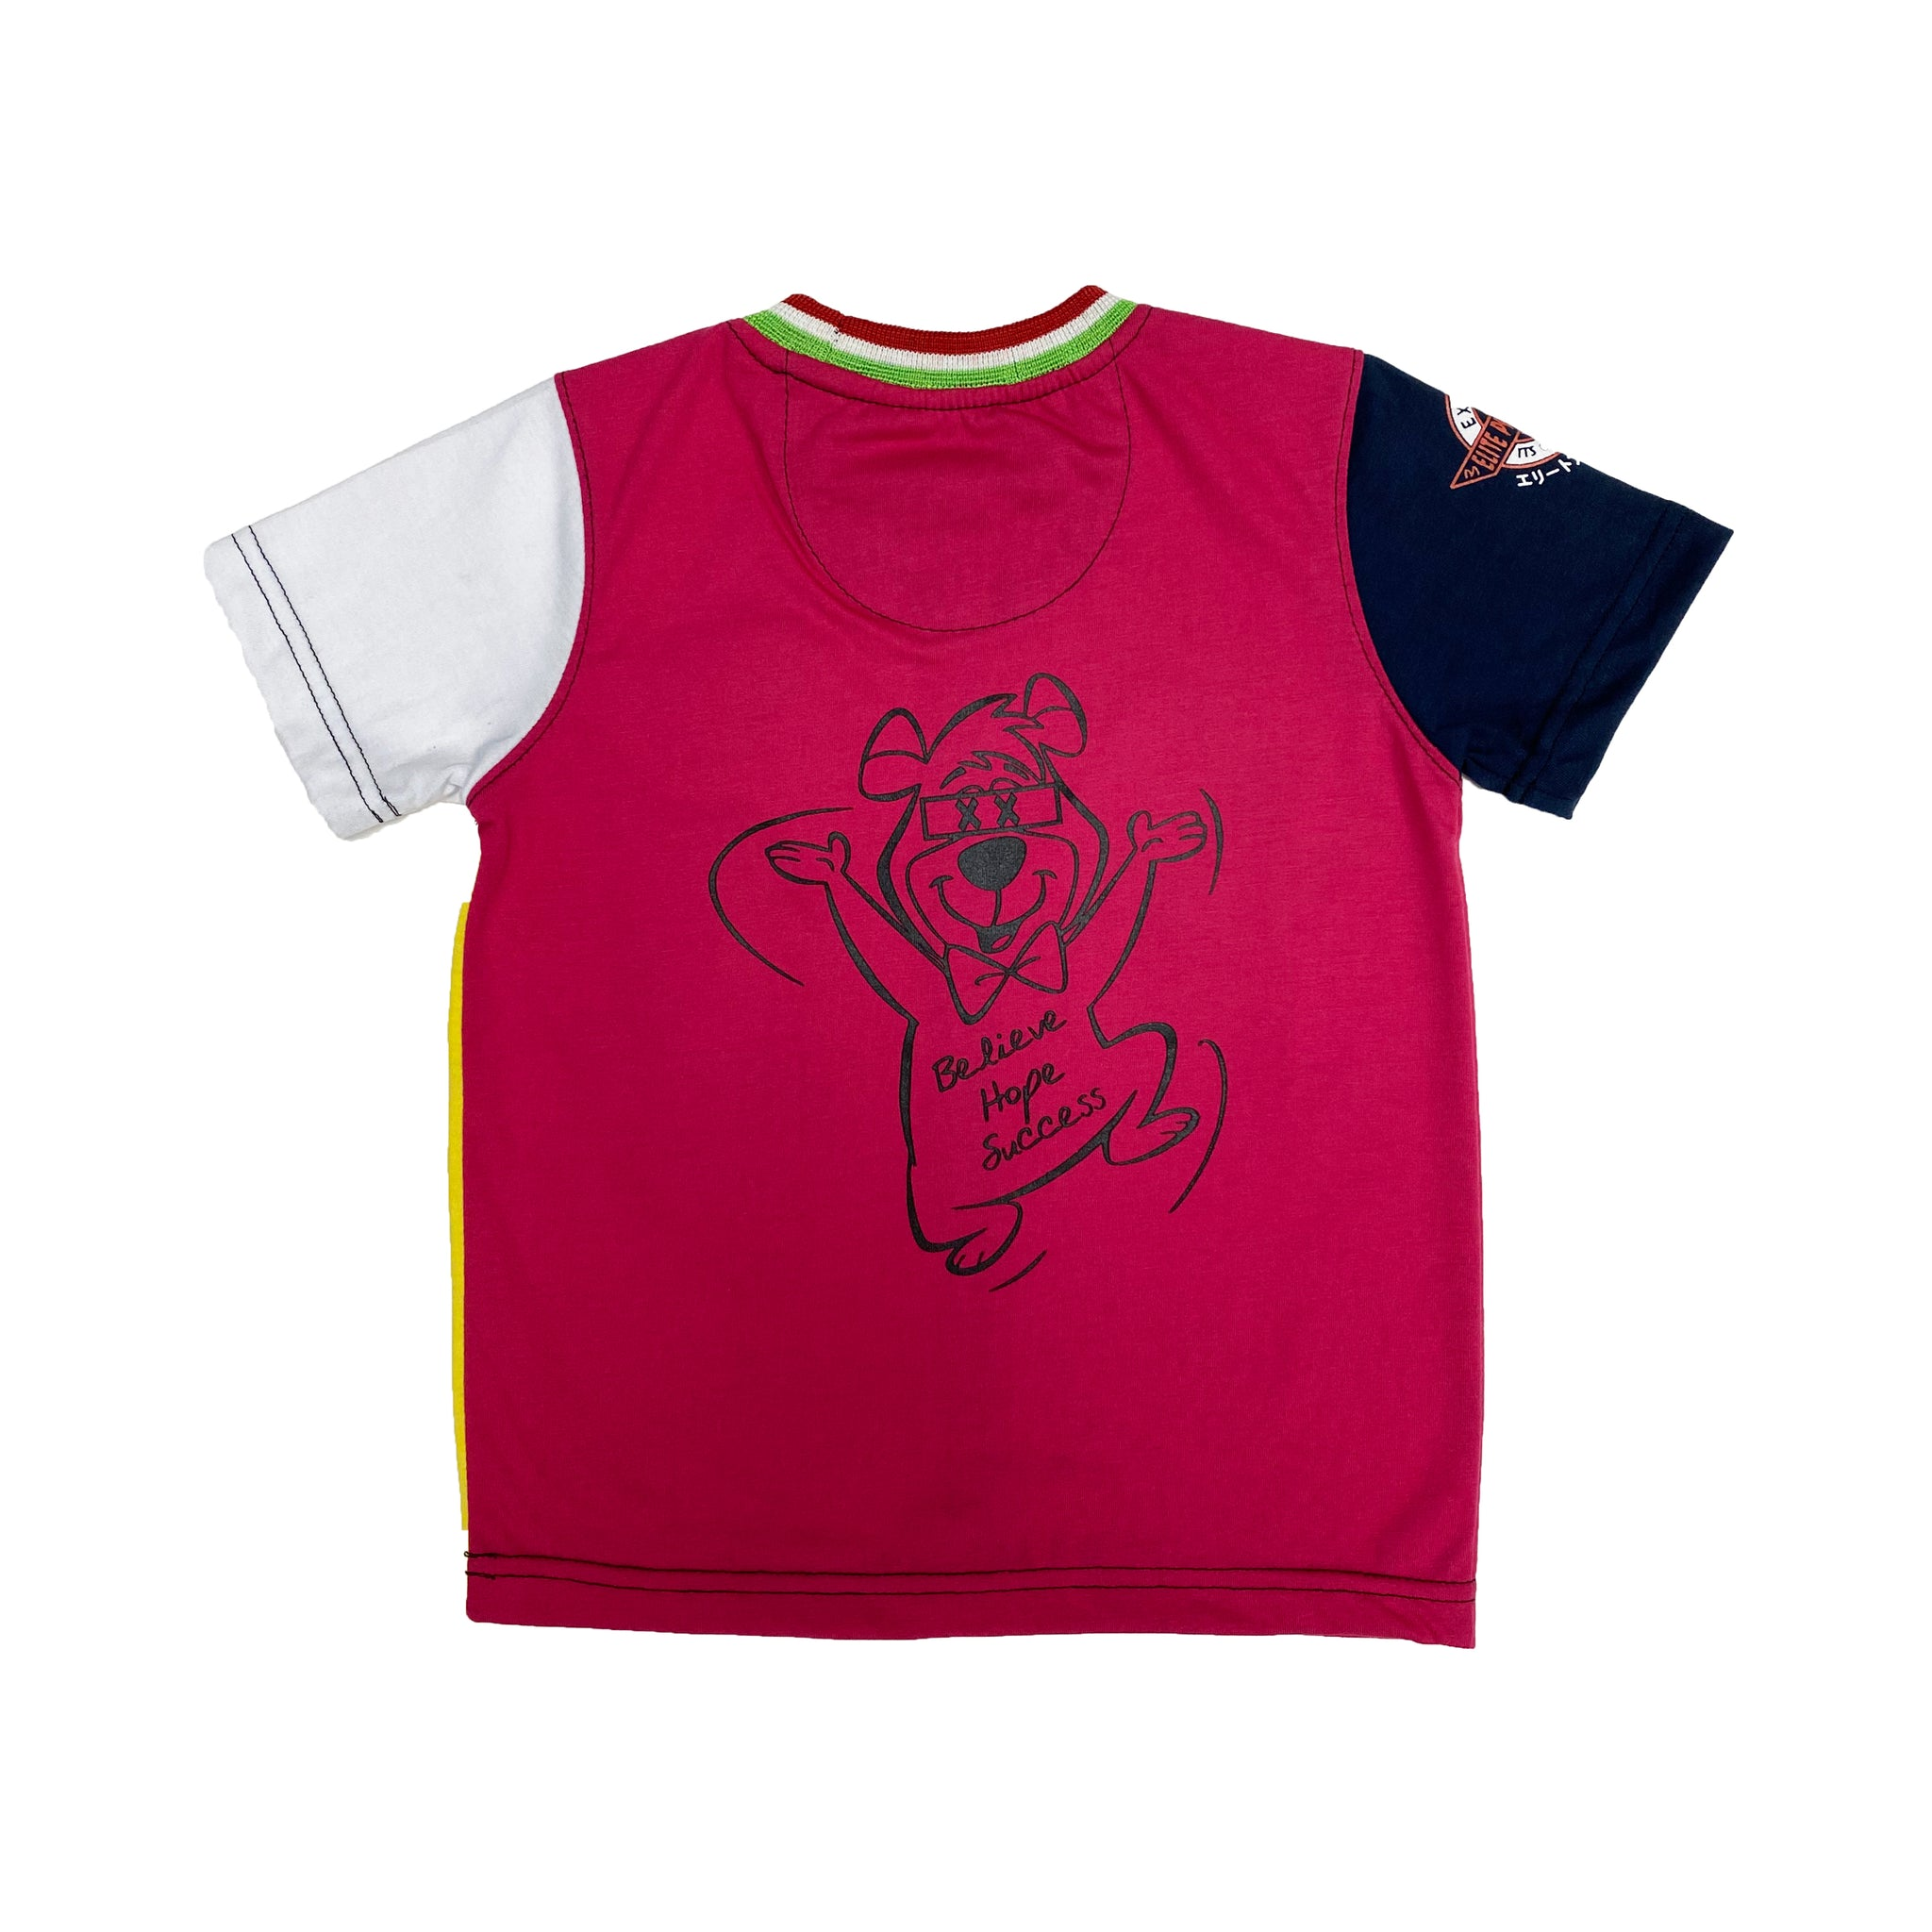 Be Humble Kids Tee Red/Yellow - Elite Premium Denim